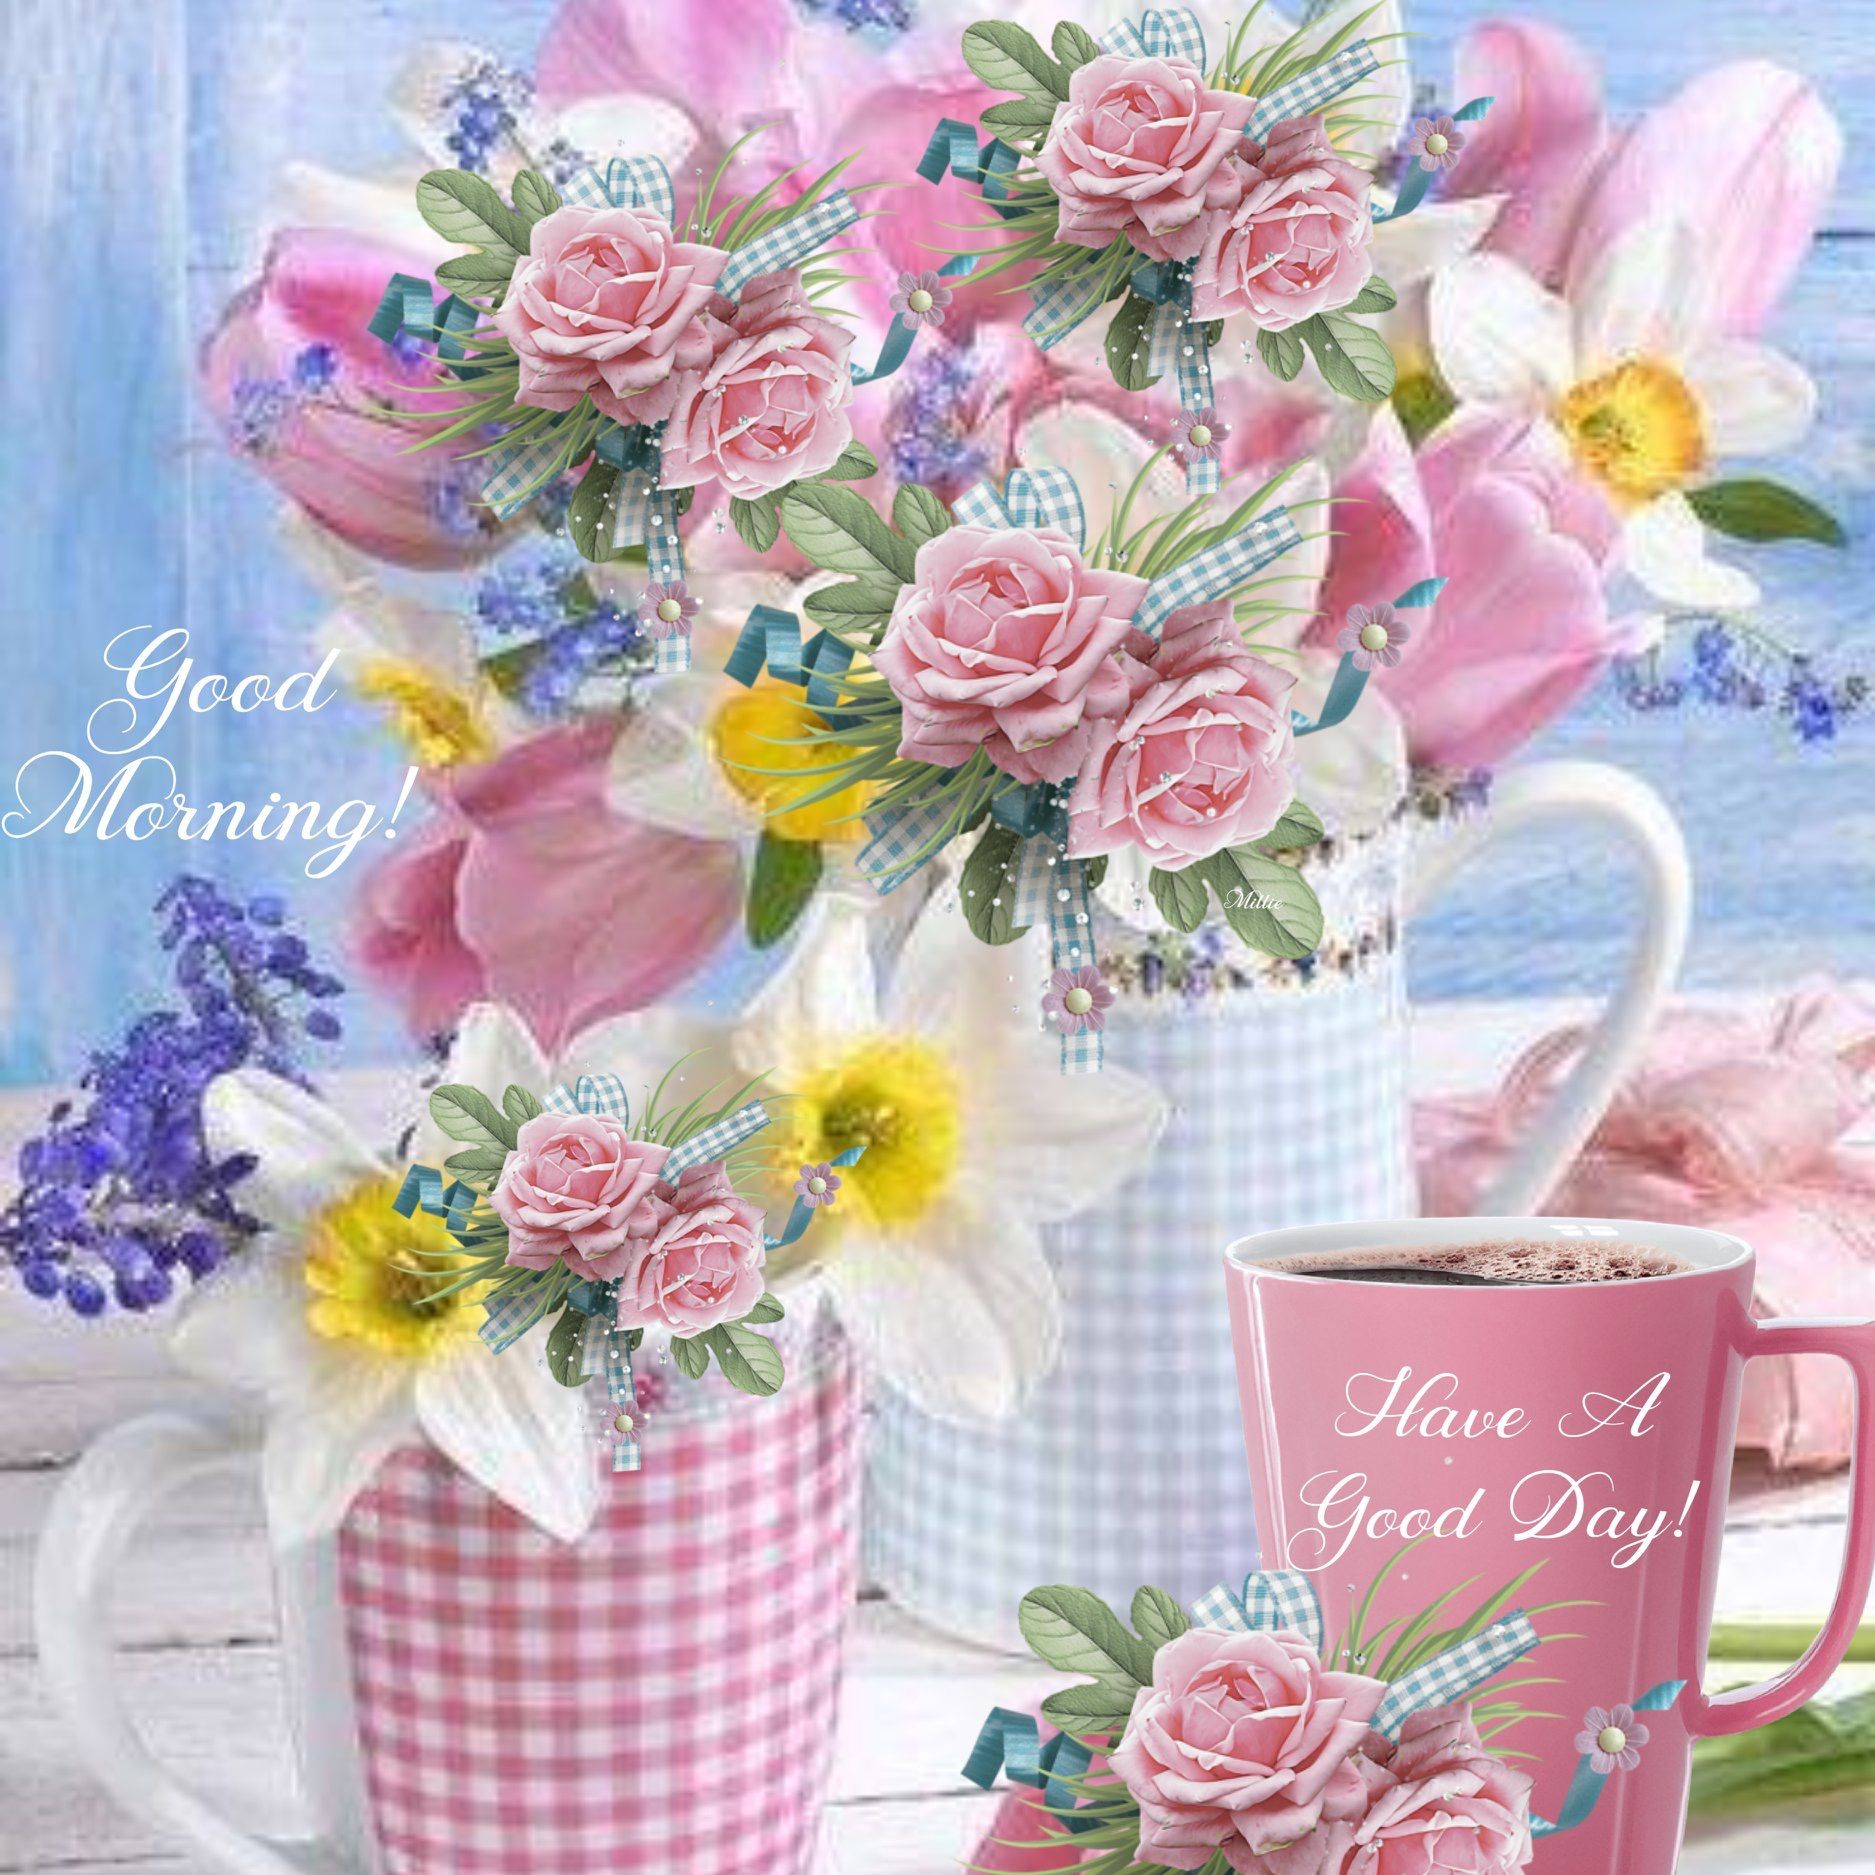 Millie's Coffee Corner. Facebook Good morning wishes